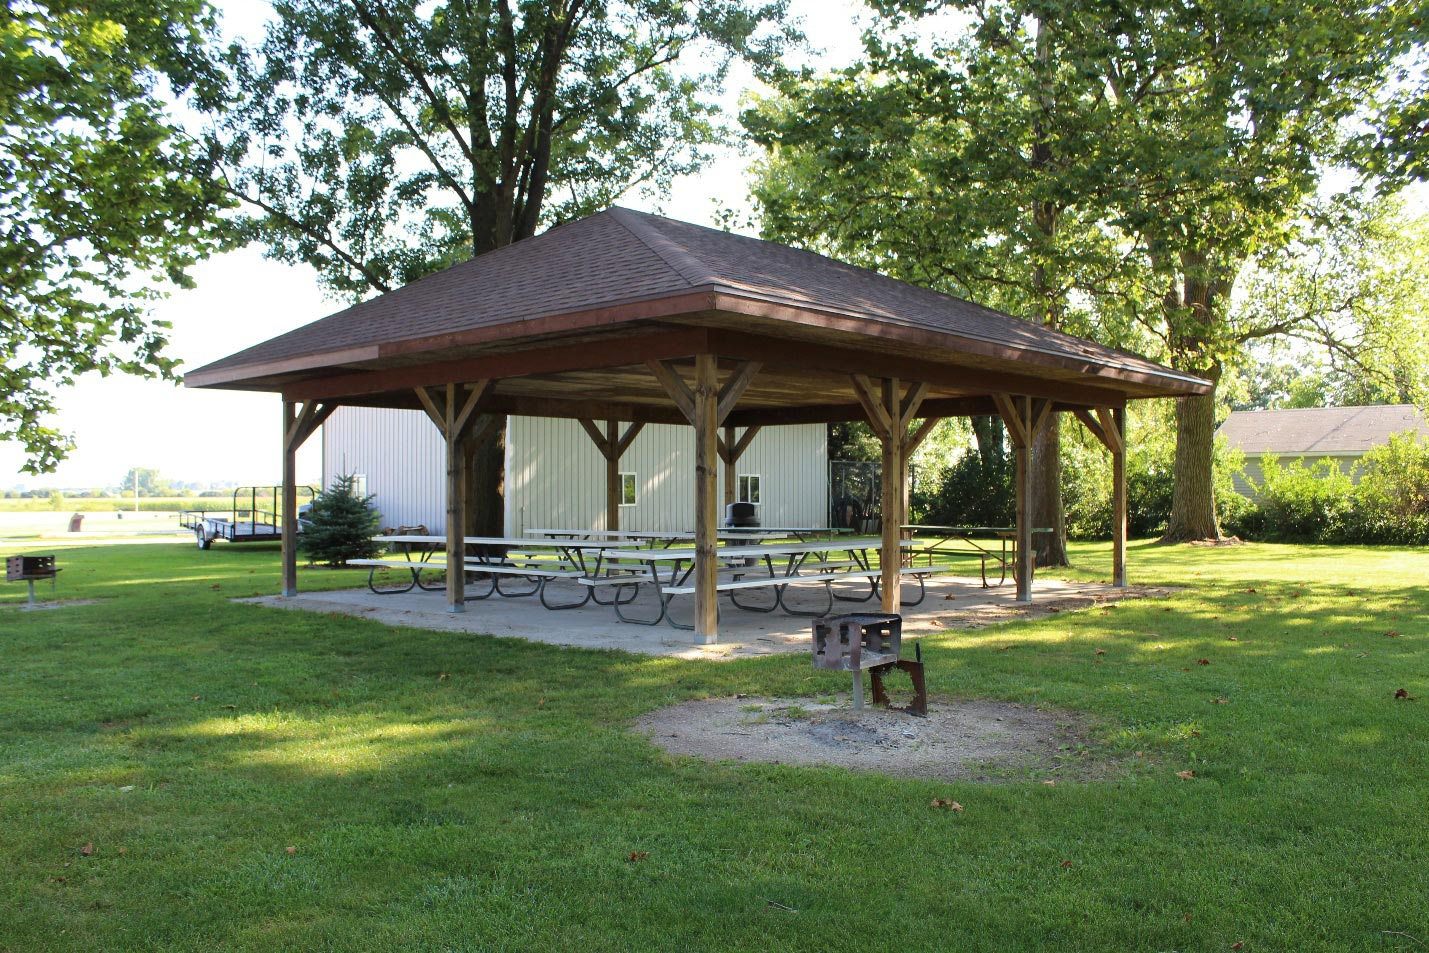 Chamberlain Park Picnic Shelter No. 2 (no-electric)